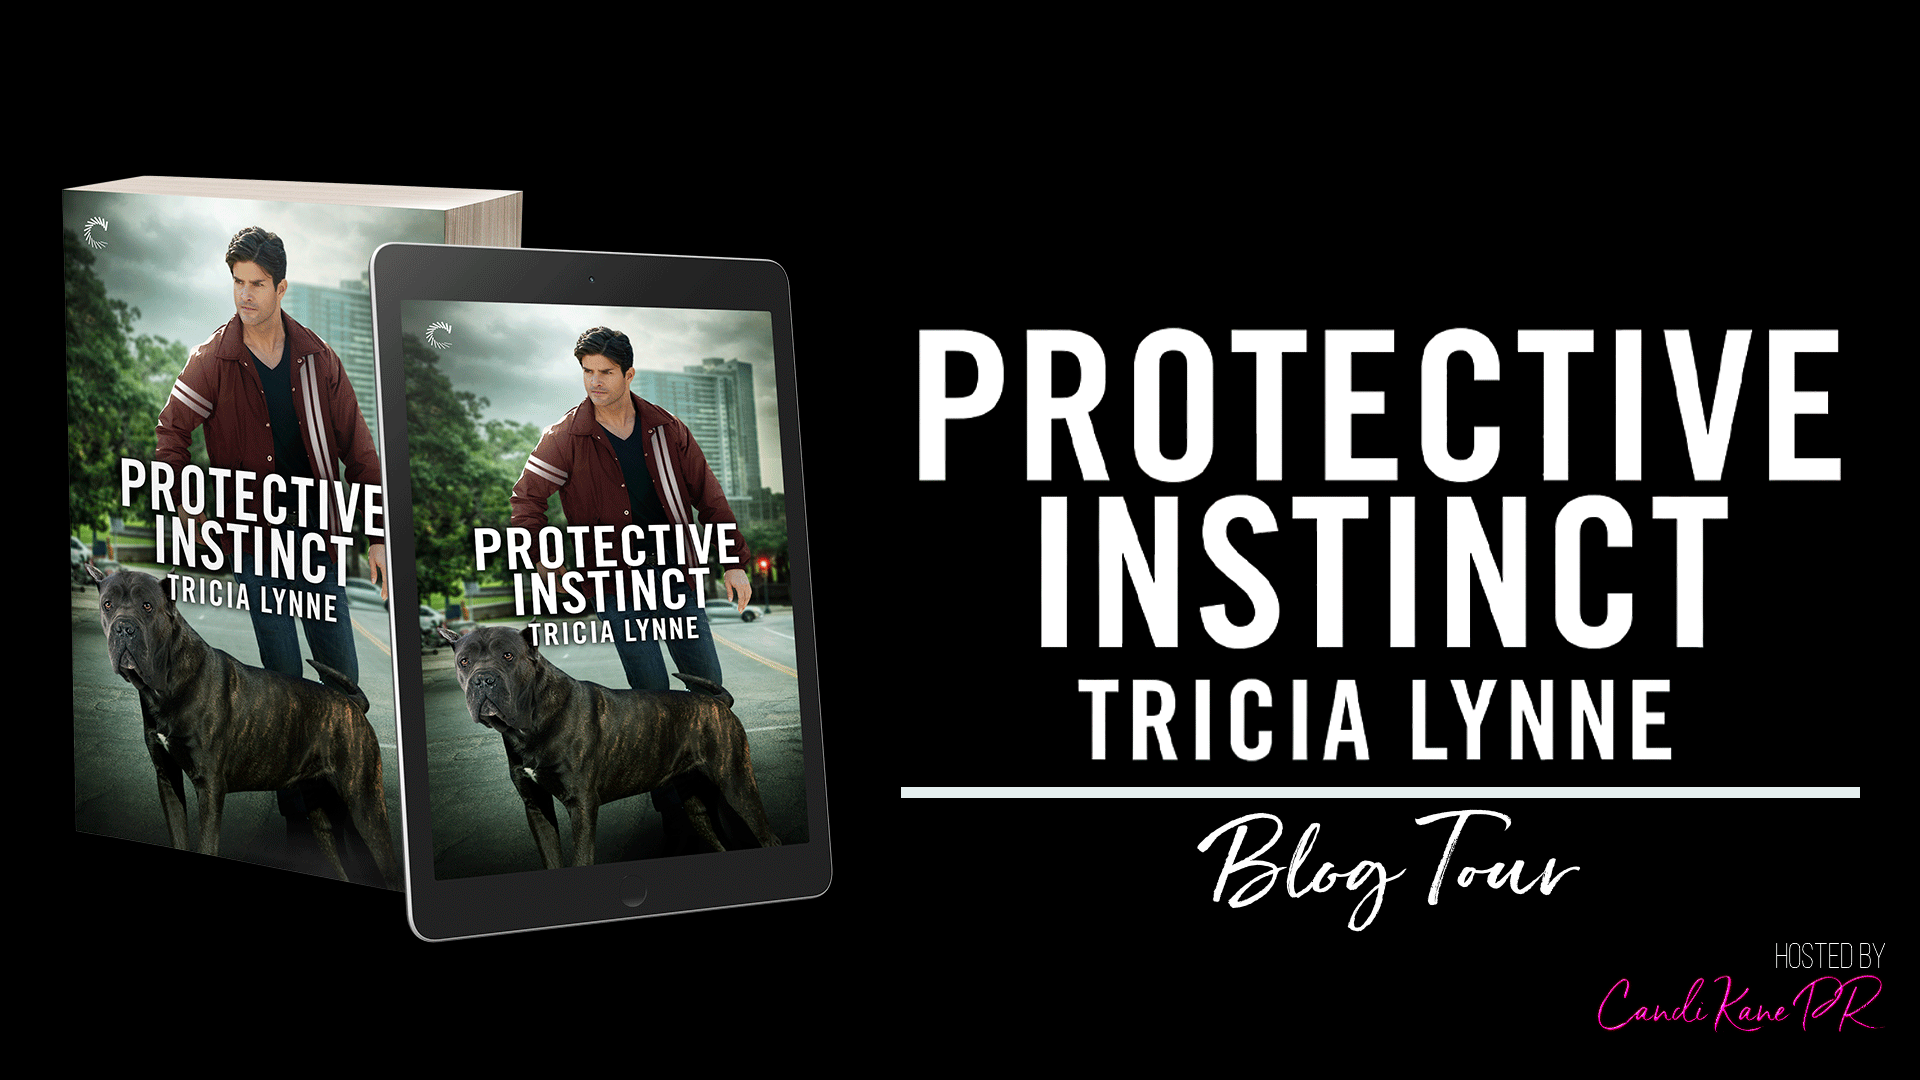 protective Instict Tricia Lynne